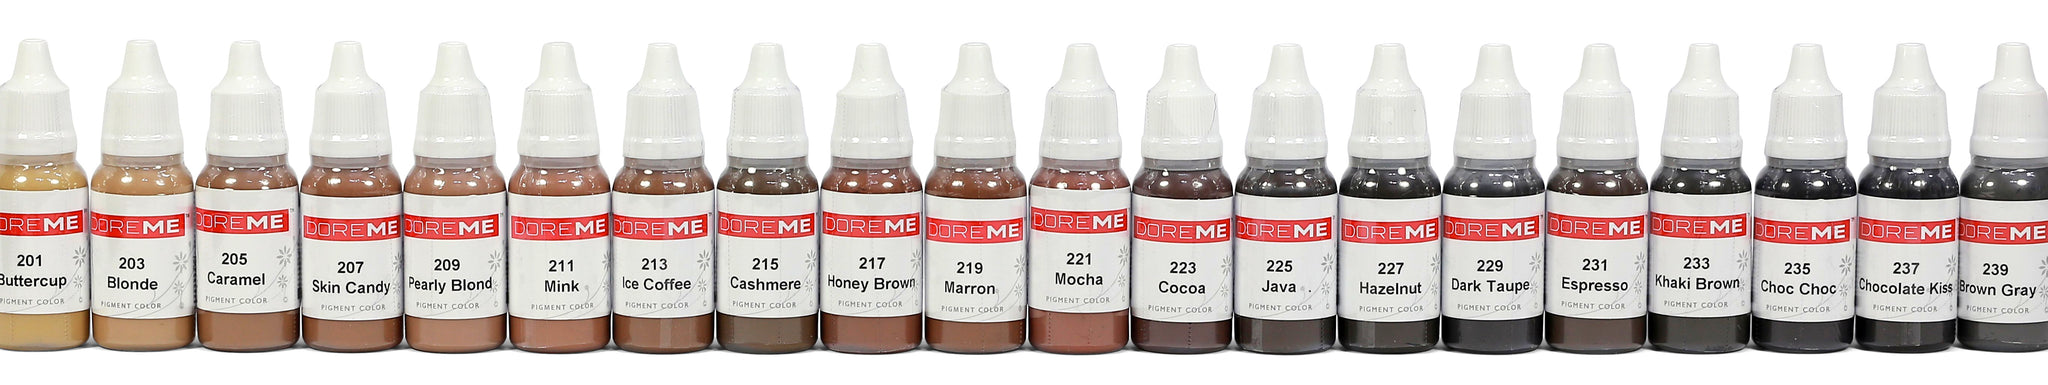 Doreme Pigments for Permanent Makeup Microblading Hand Tool UK Distributor Supplier